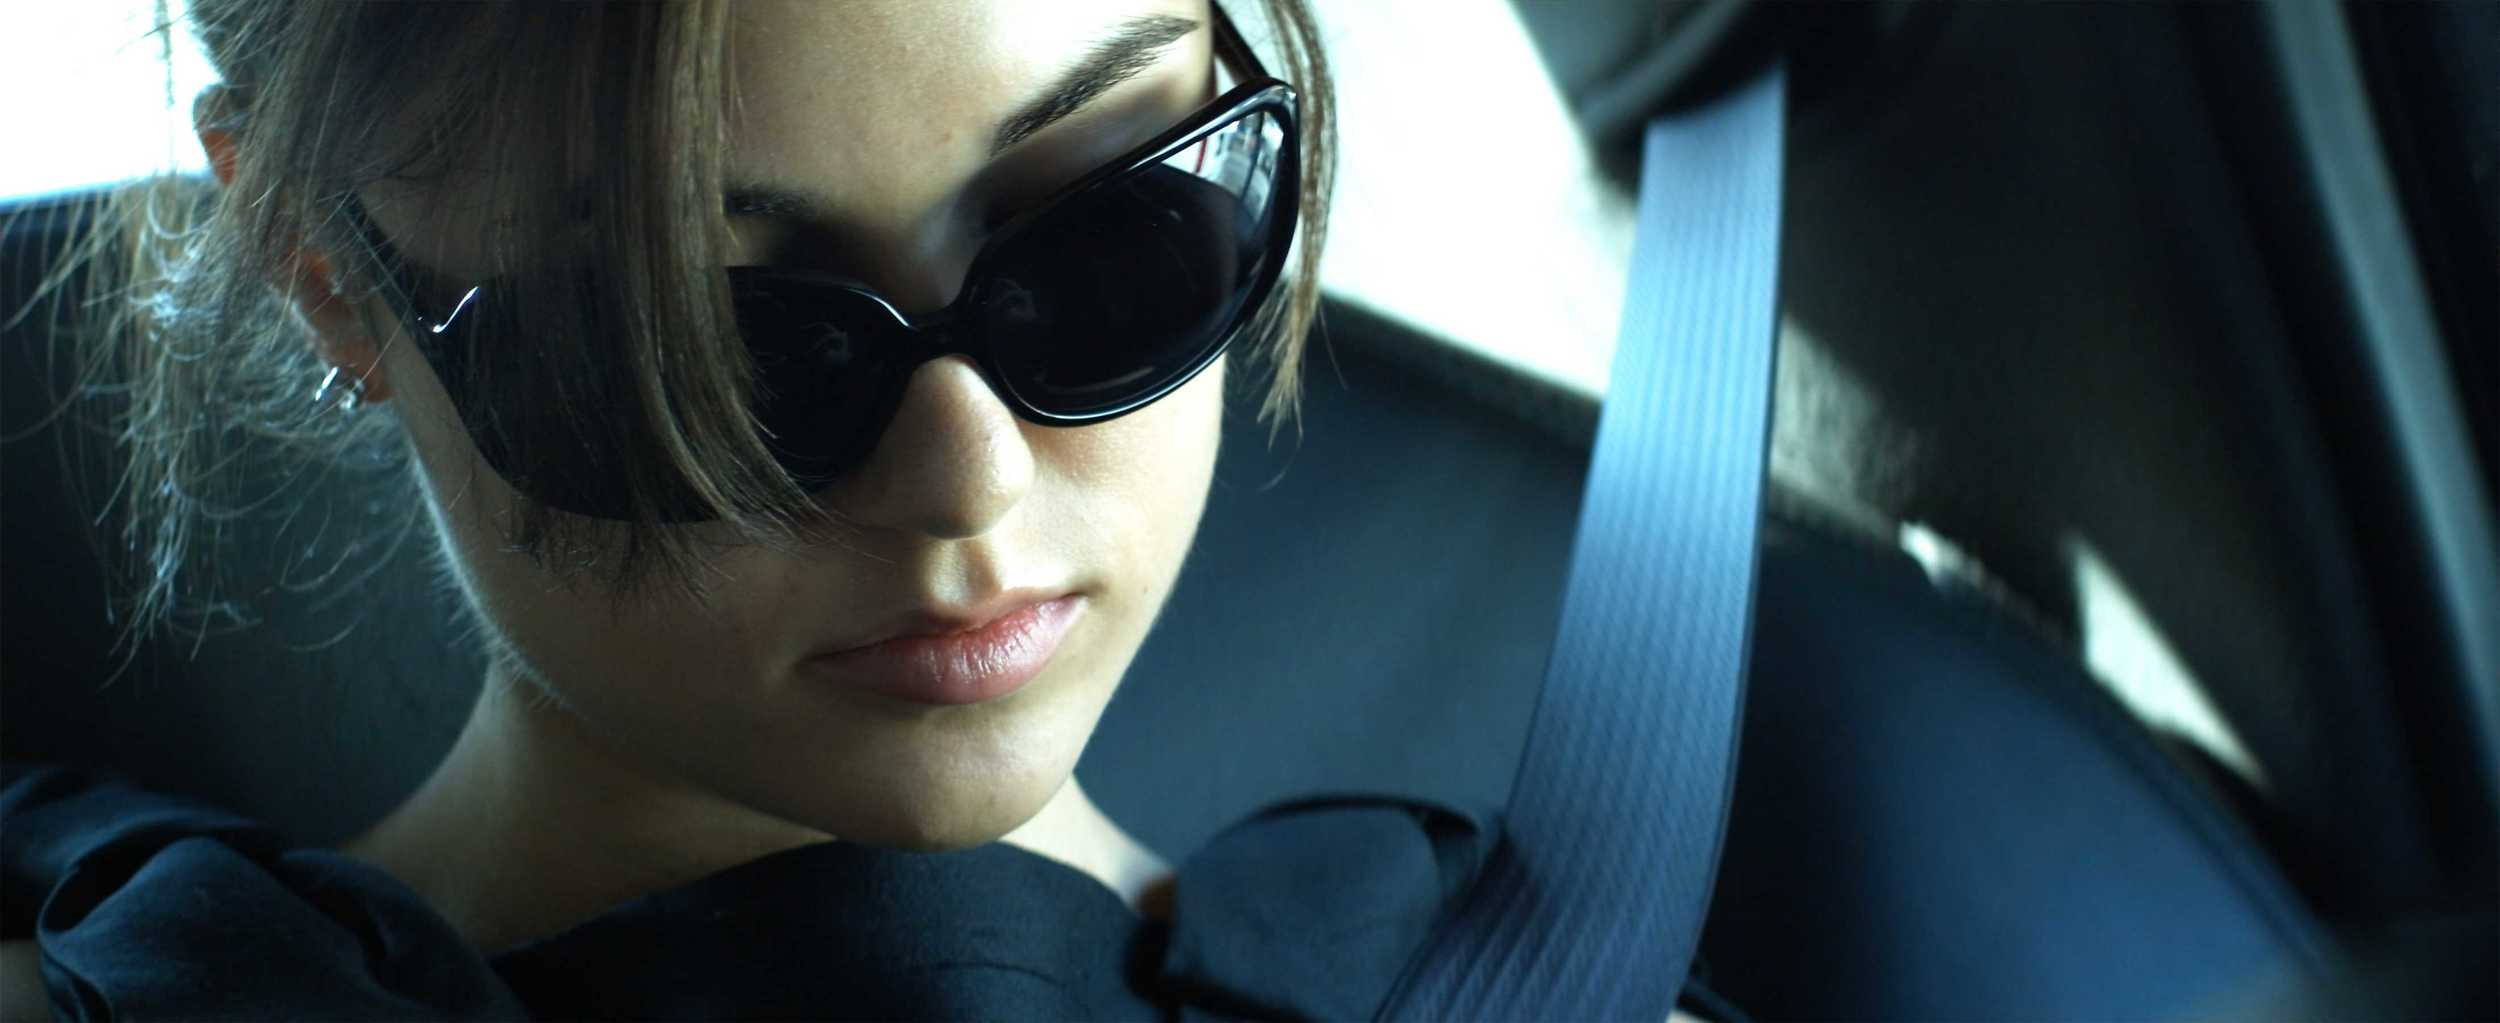 Real-life porn star Sasha Grey in 2009  The Girlfriend Experience.  ( Image )